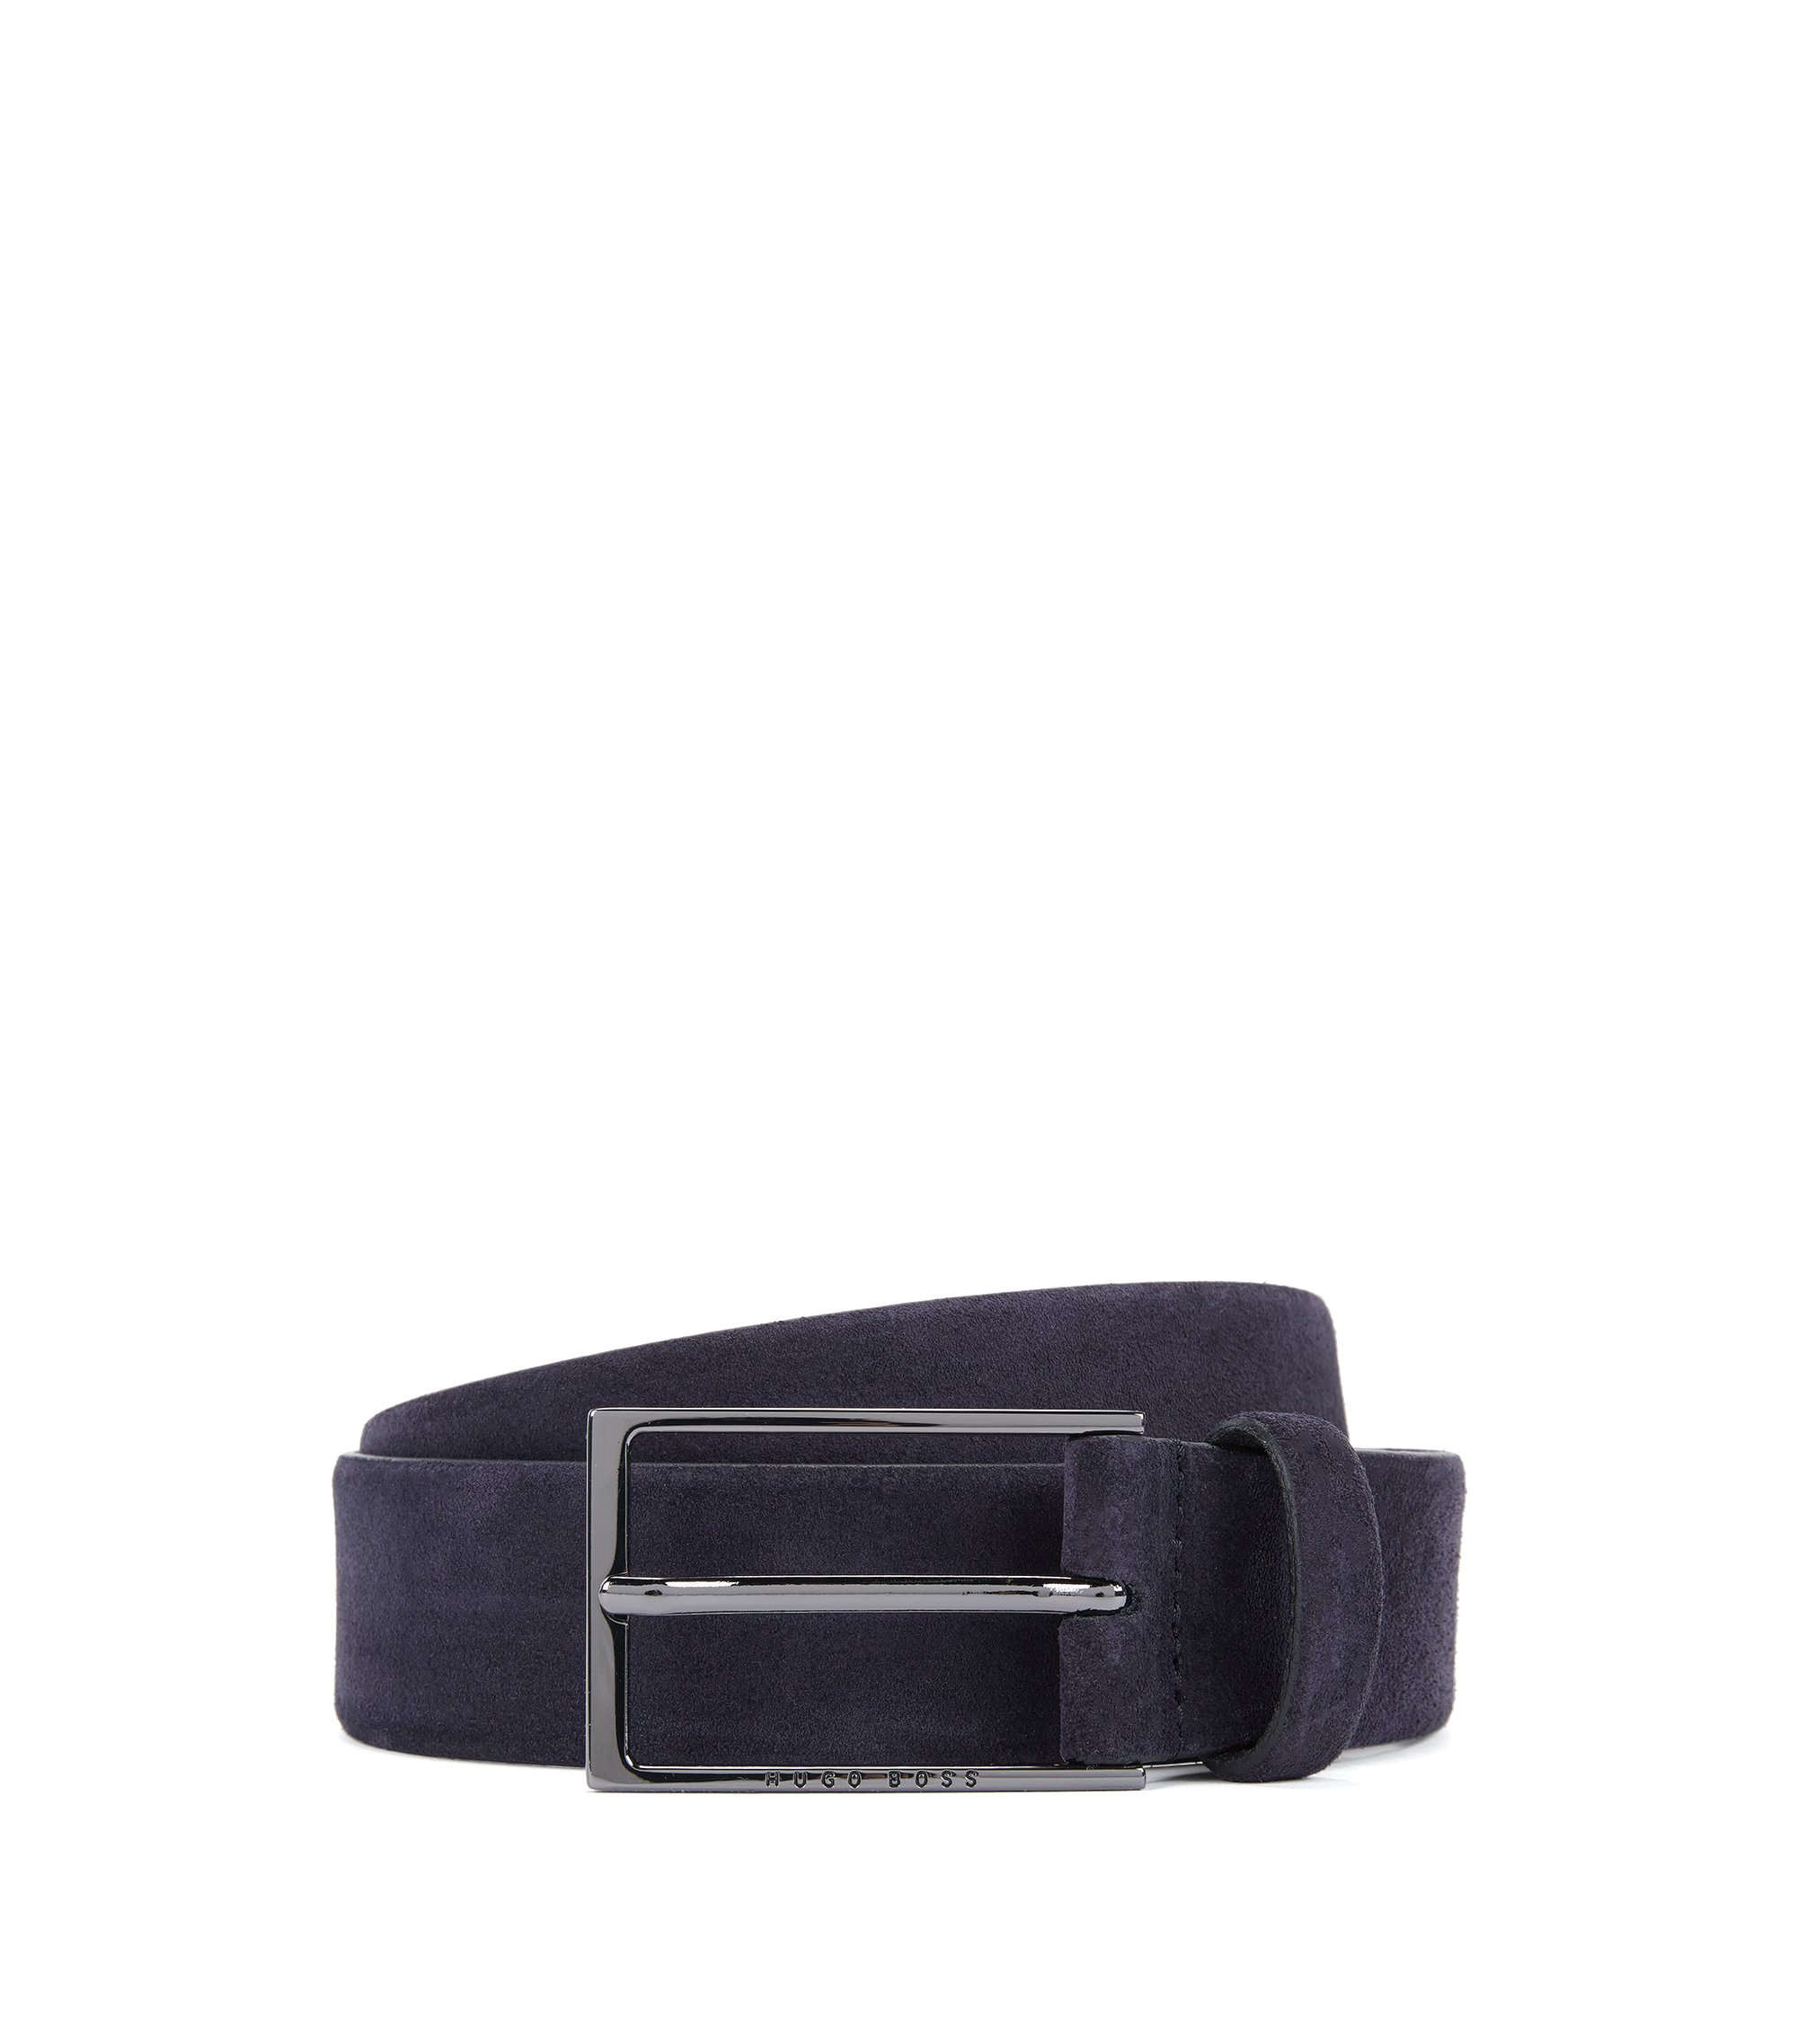 Suede Belt | Calindo Sz Sd, Dark Blue